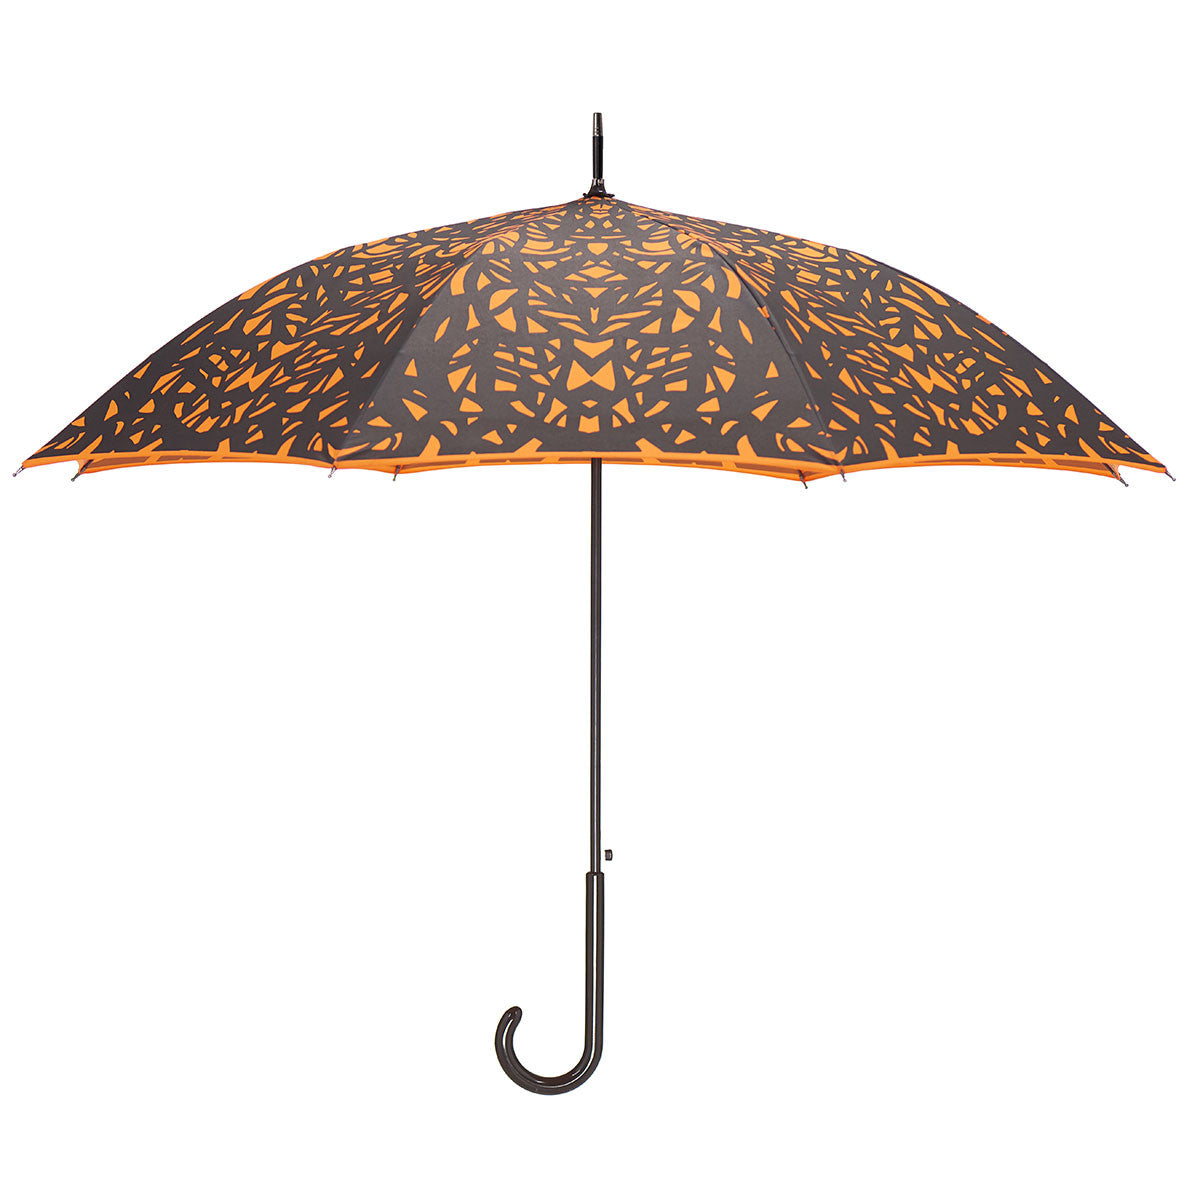 Butterfly Wing Design Black on Flame Red/Orange Umbrella w/ sleeve and shoulder strap